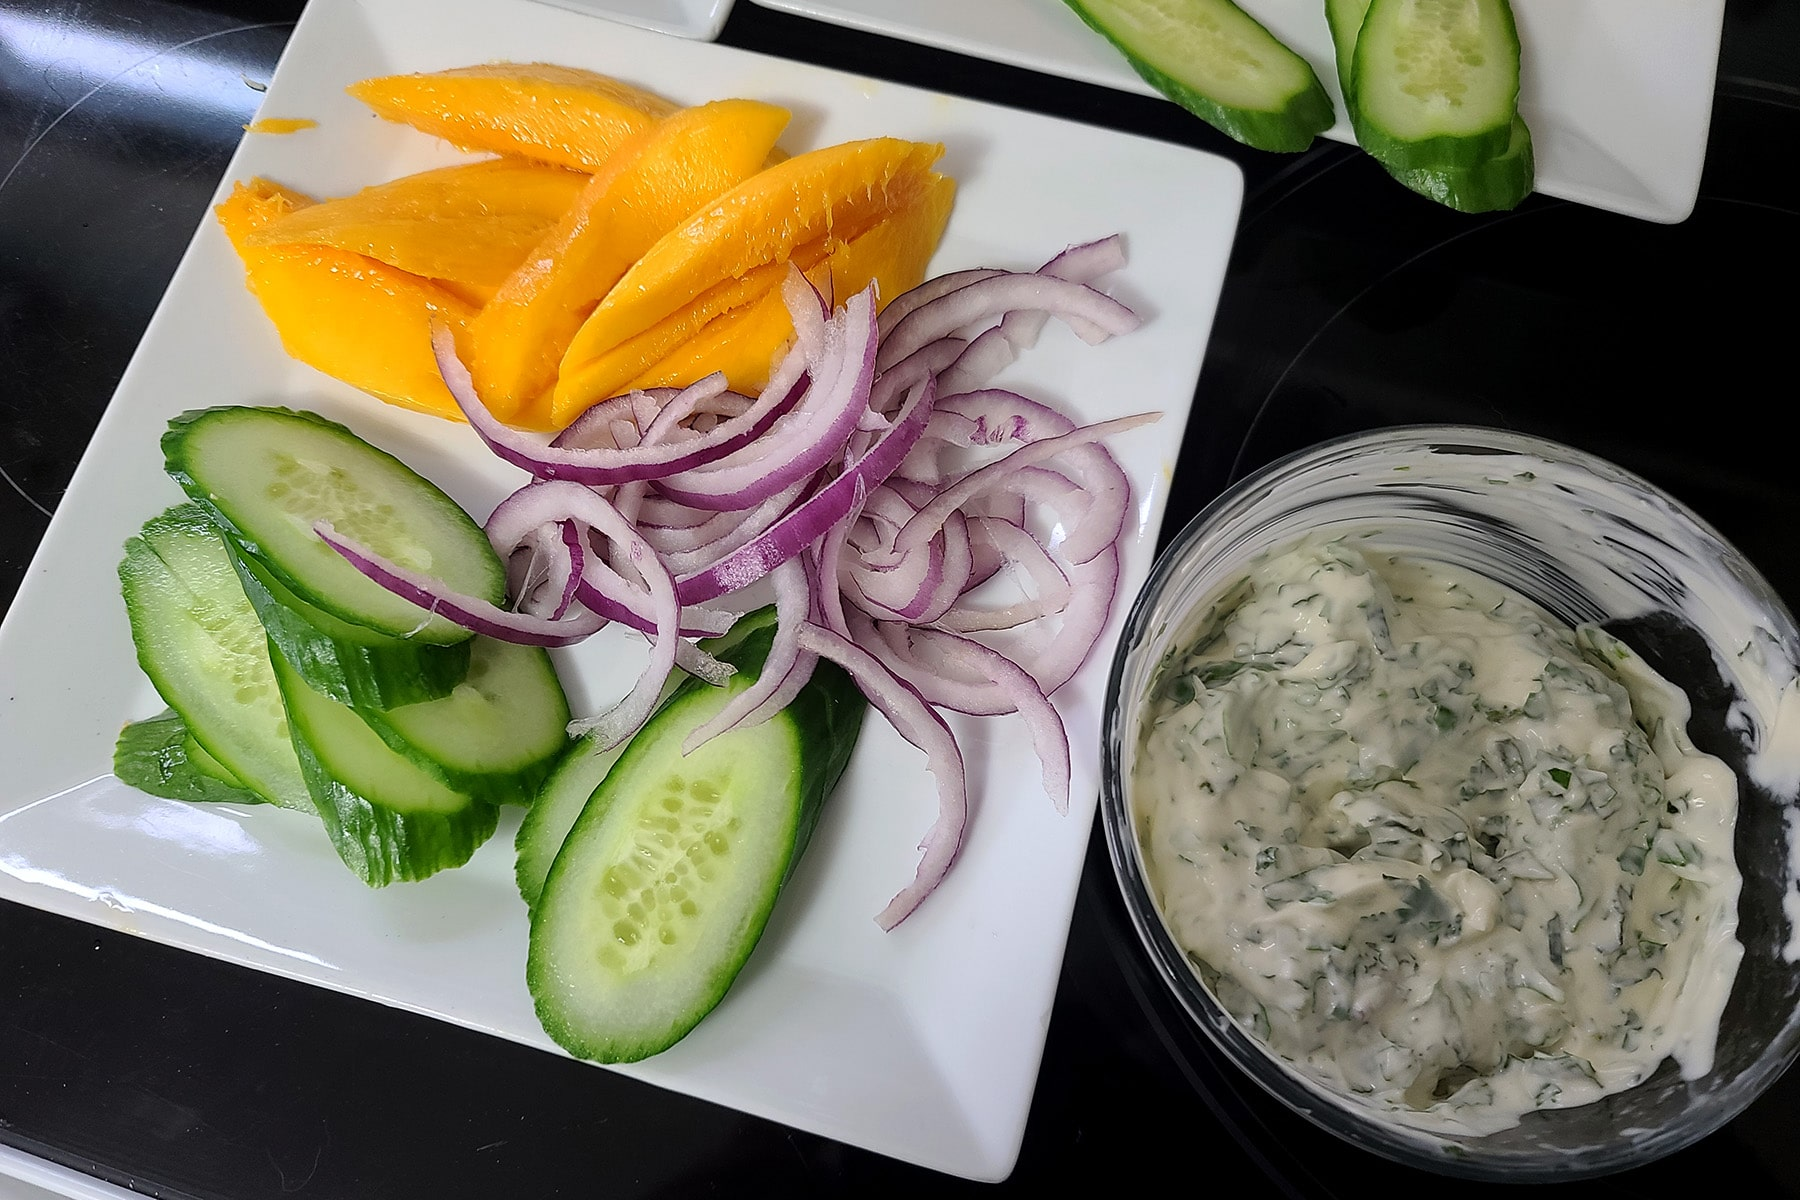 Slices of mango, cucumber, and red onion on a white plate, next to a small glass bowl of cilanto-mint mayonnaise.